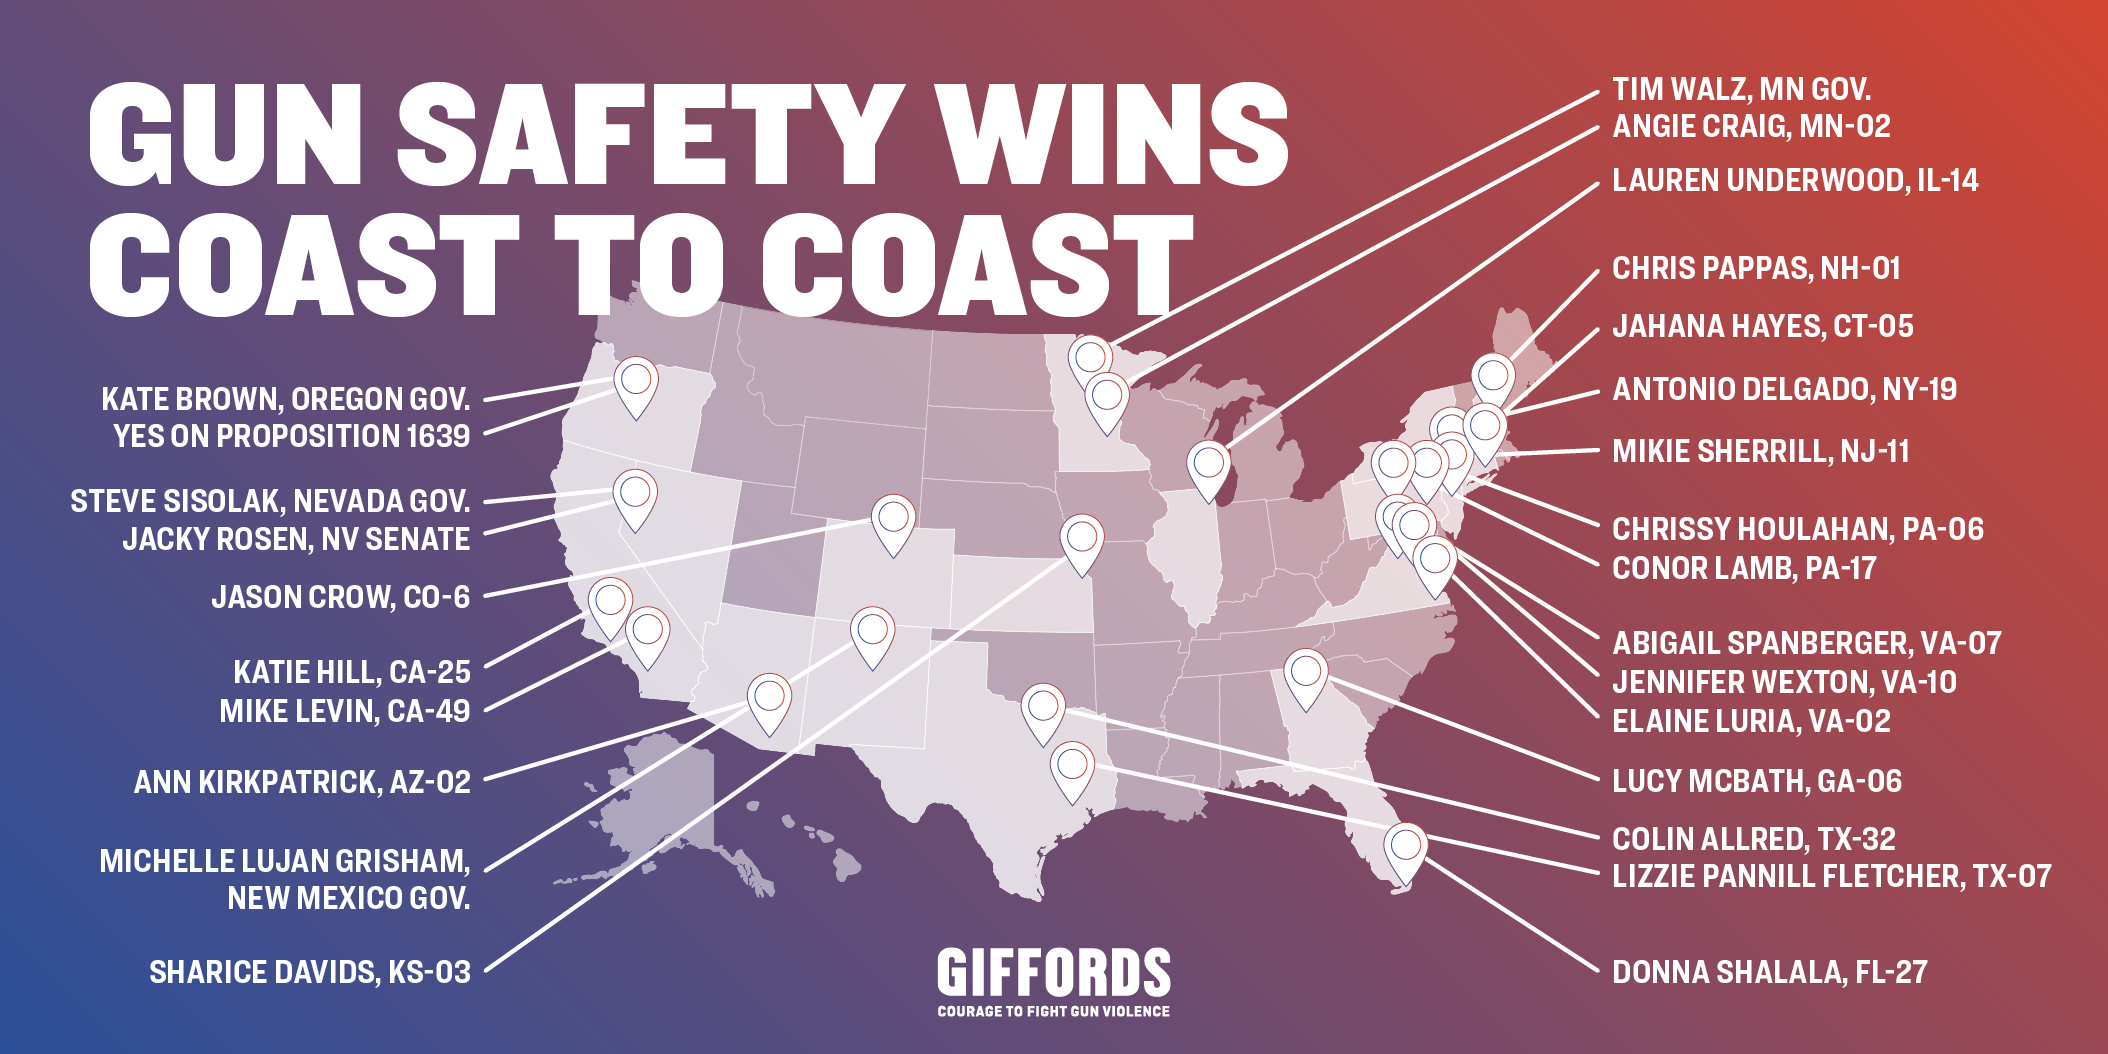 Gun-Safety-Wins-Coast-to-Coast-Georgia (1)